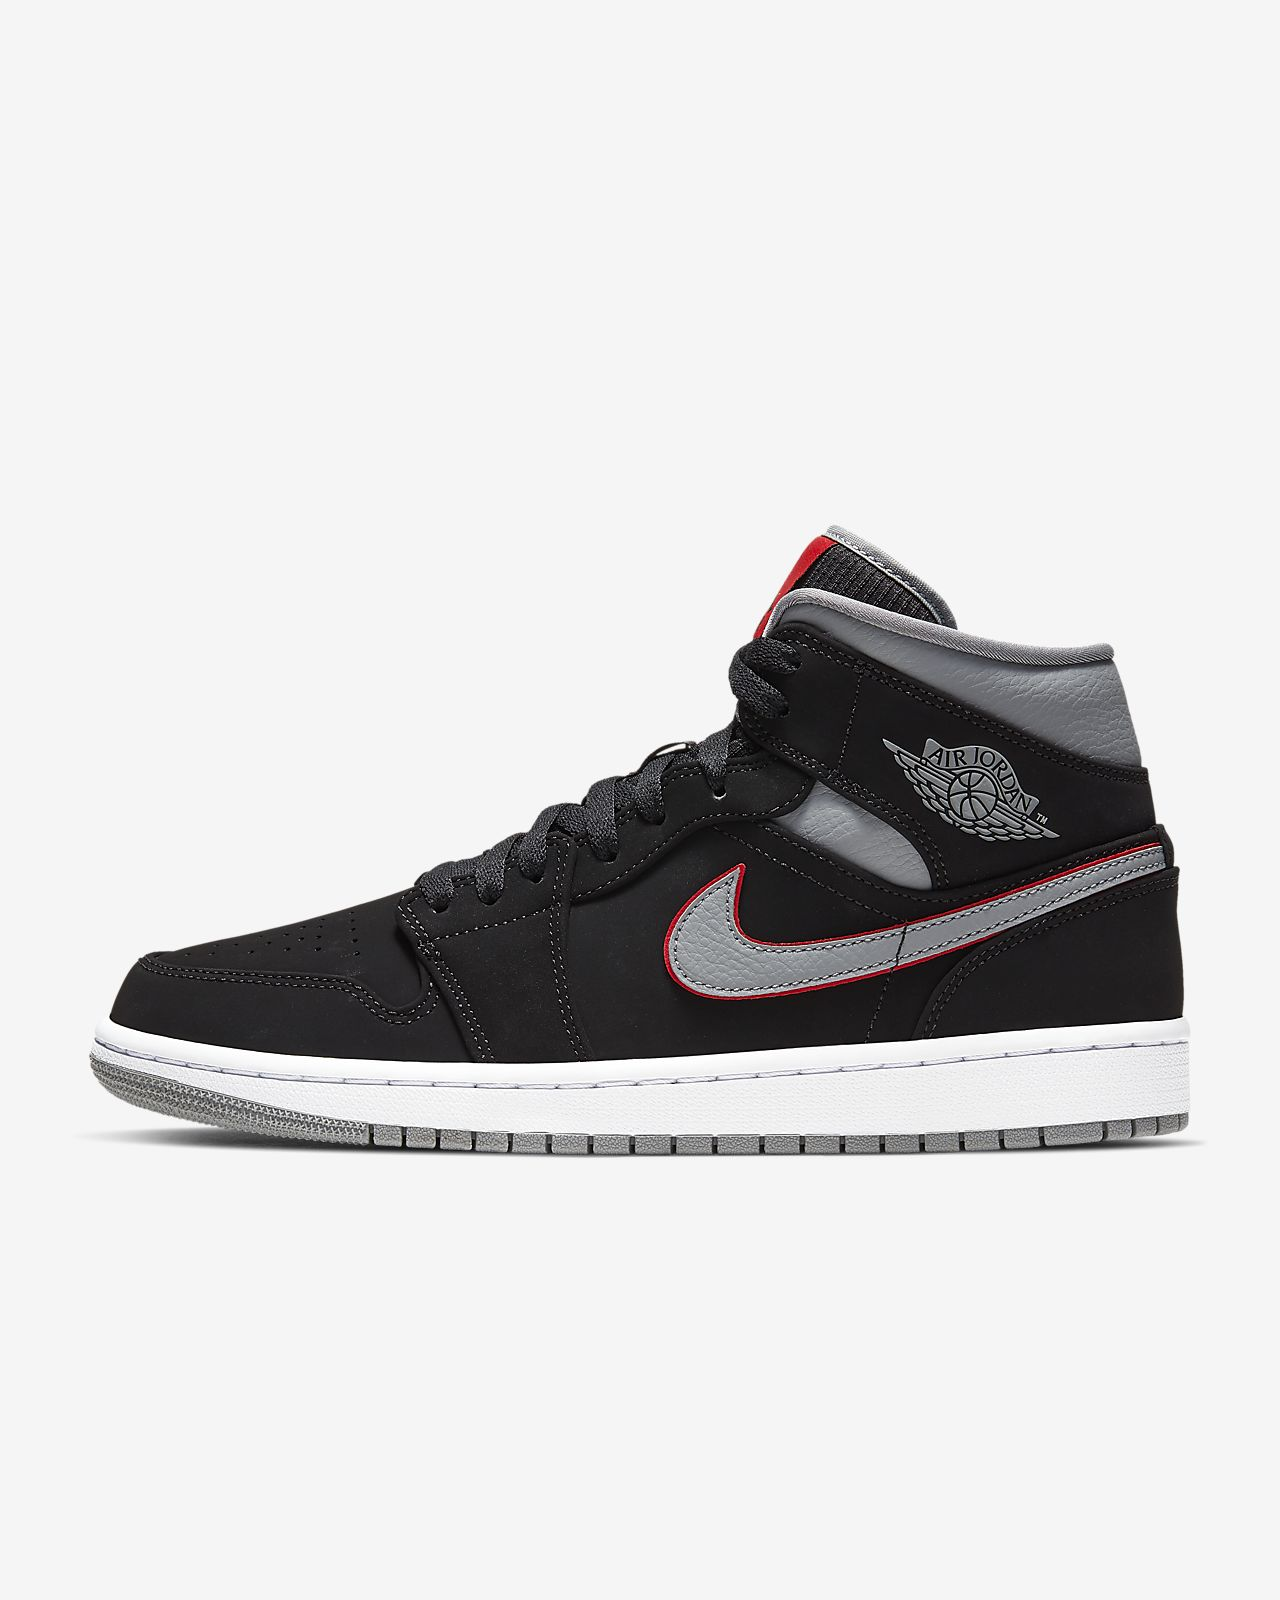 on sale 7cfeb b92e6 Men s Shoe. Air Jordan 1 Mid